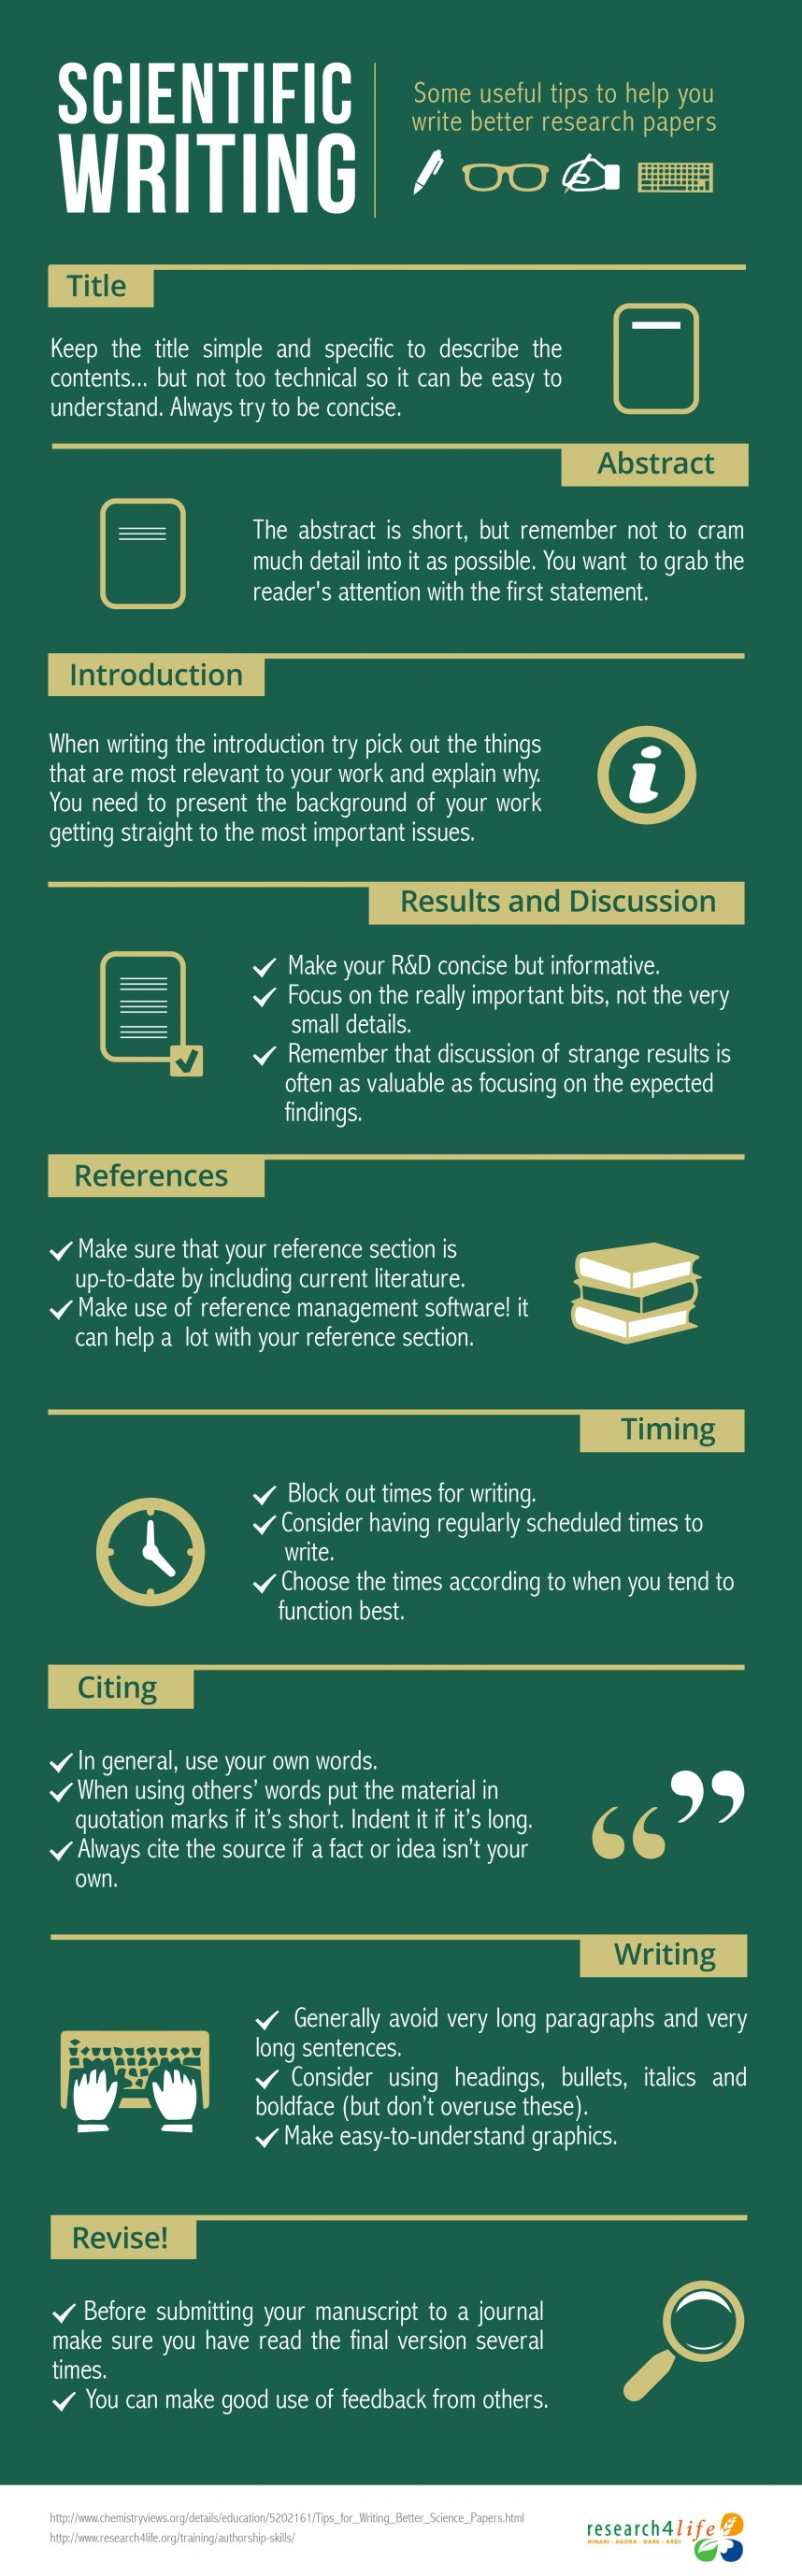 001 Research Paper Scientific Writing Awesome Tips College A